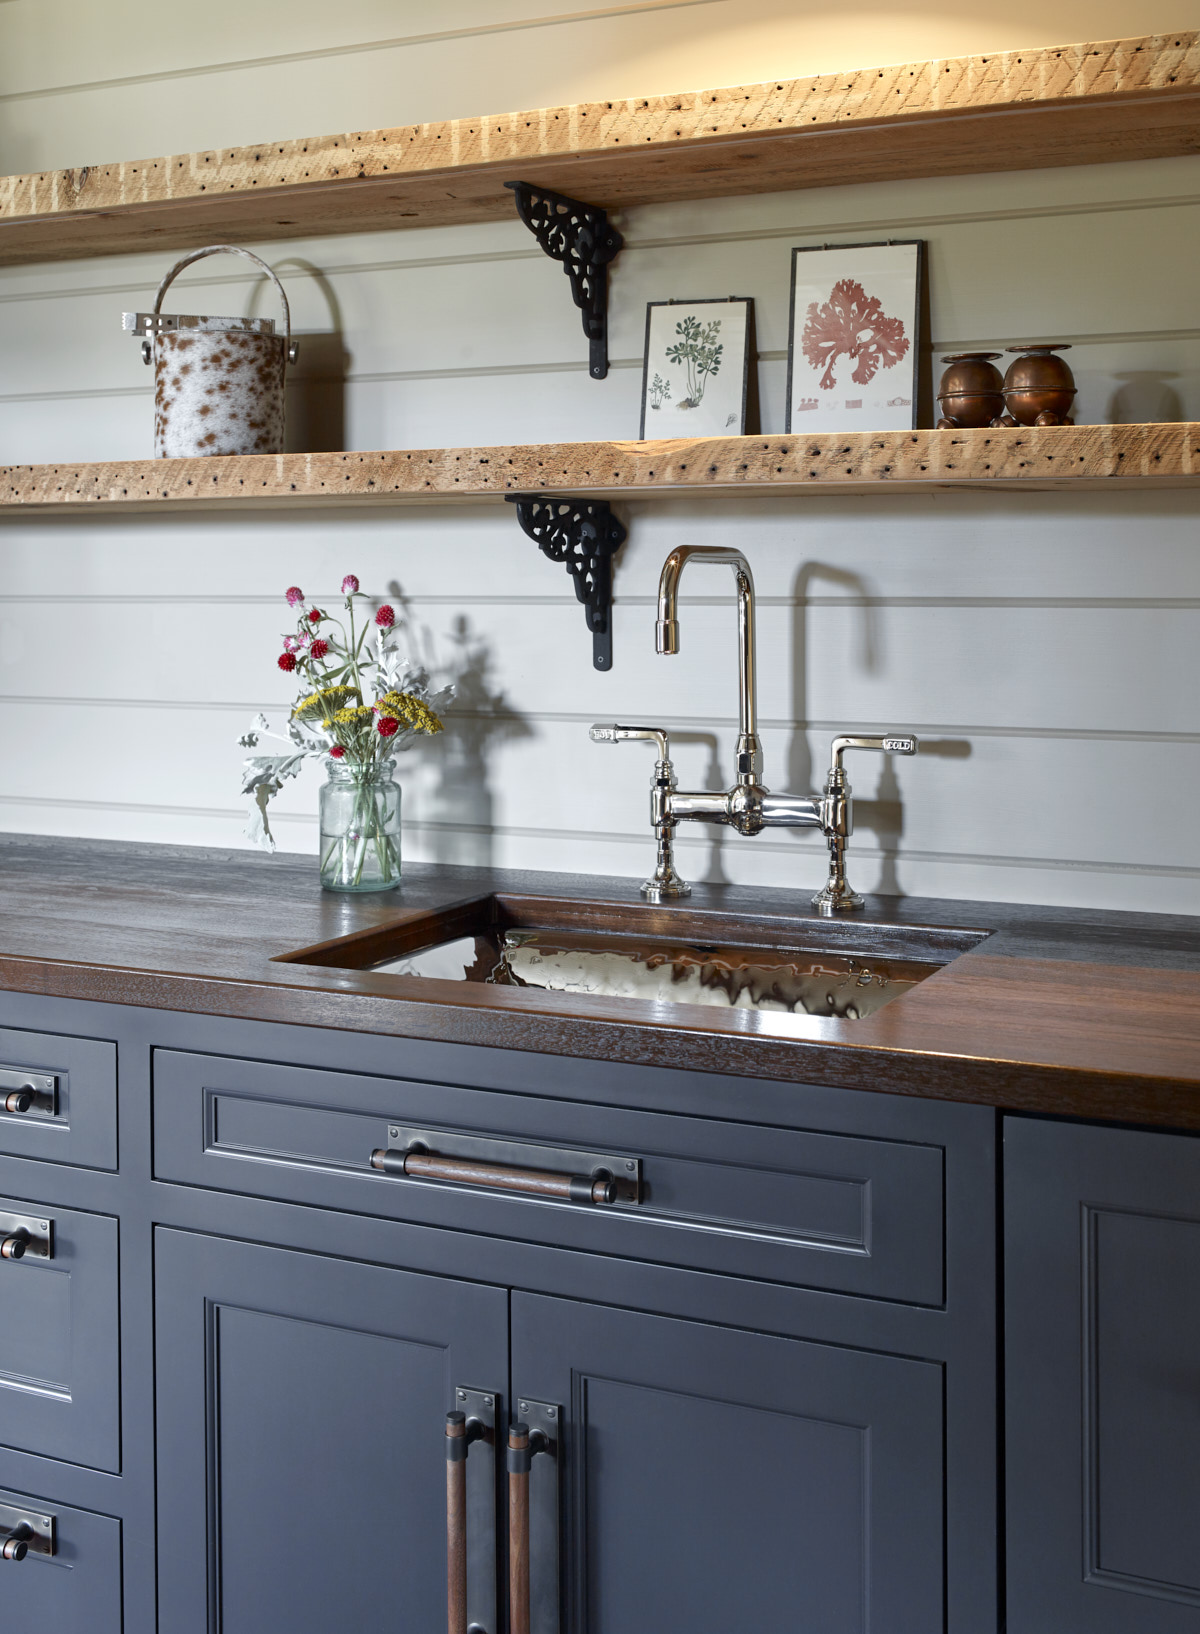 Rustic sink with hammer finish and dark stained wood countertops